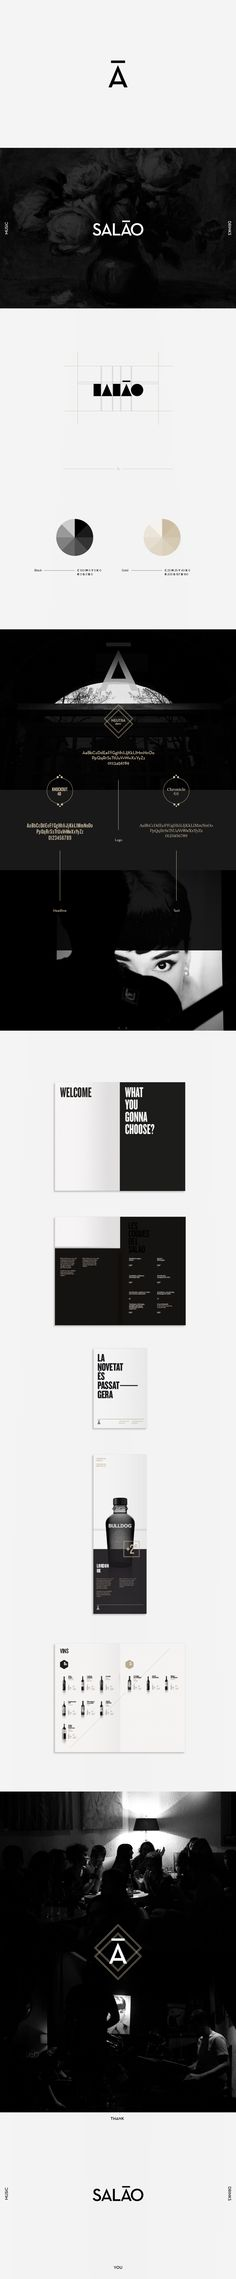 Bar Salao by Meme. , via Behance